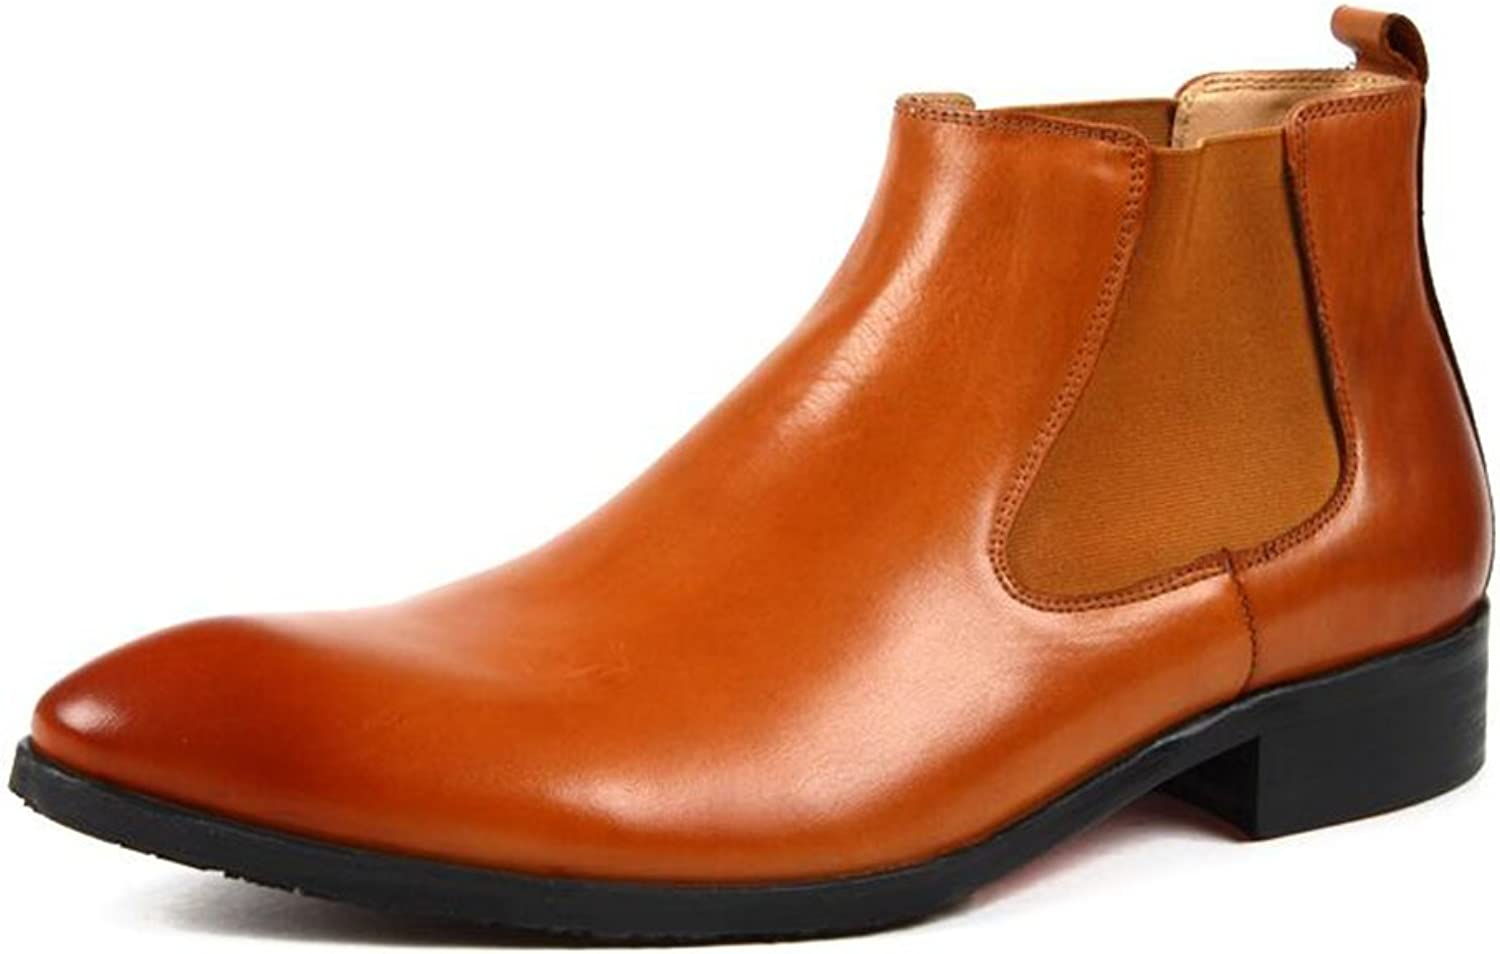 SUNNY Autumn and Winter Fashion Leather Boots Ankle Boots Martin Boots Casual (color   2, Size   EU42 UK8.5 CN43)